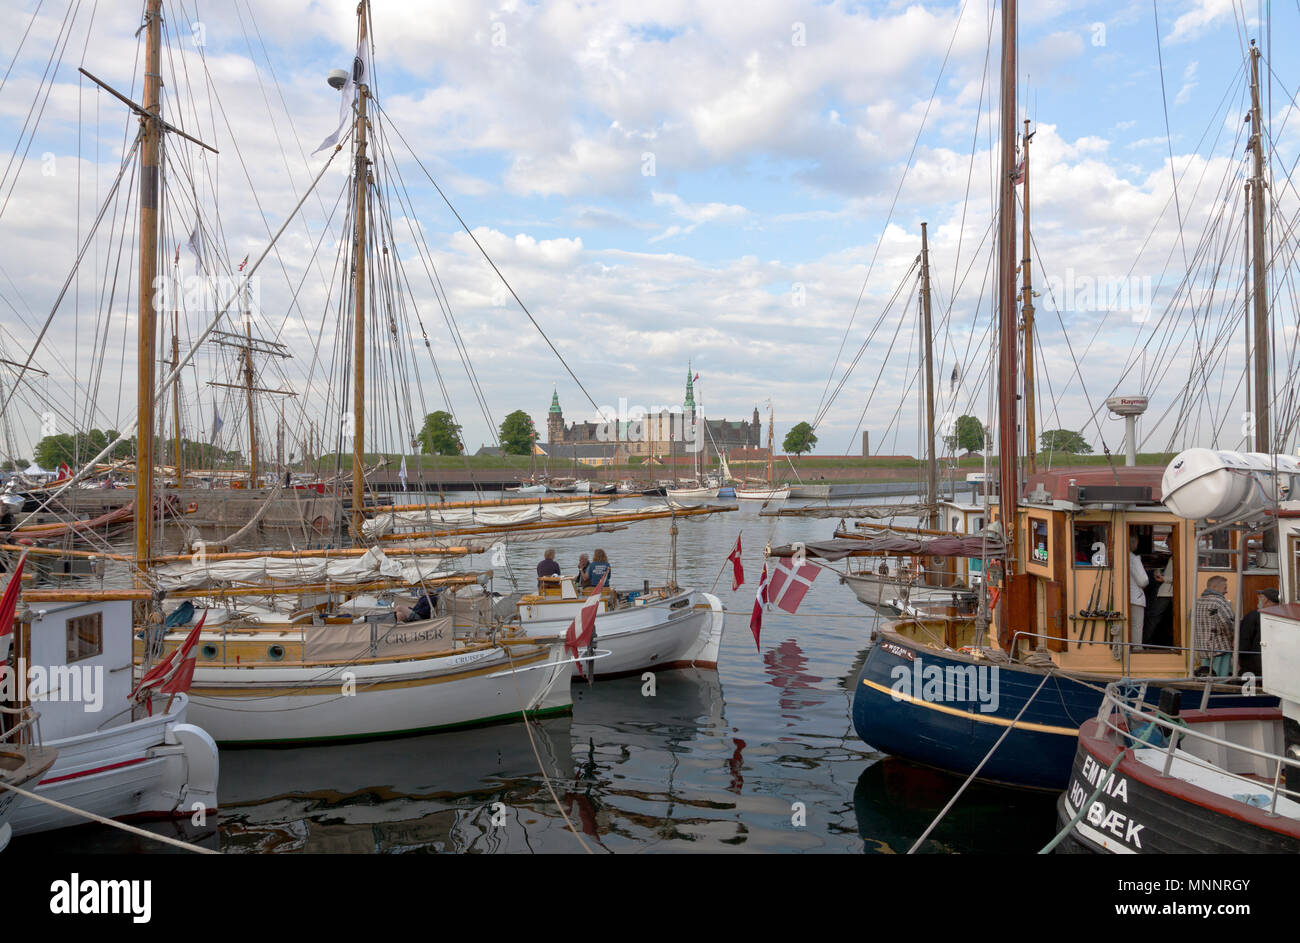 Historical days of more than 100 wooden ships in Elsinore Culture Harbour at Pentecost or Whitsun. Helsingør, Elsinore, Denmark. Kronborg Castle. Stock Photo